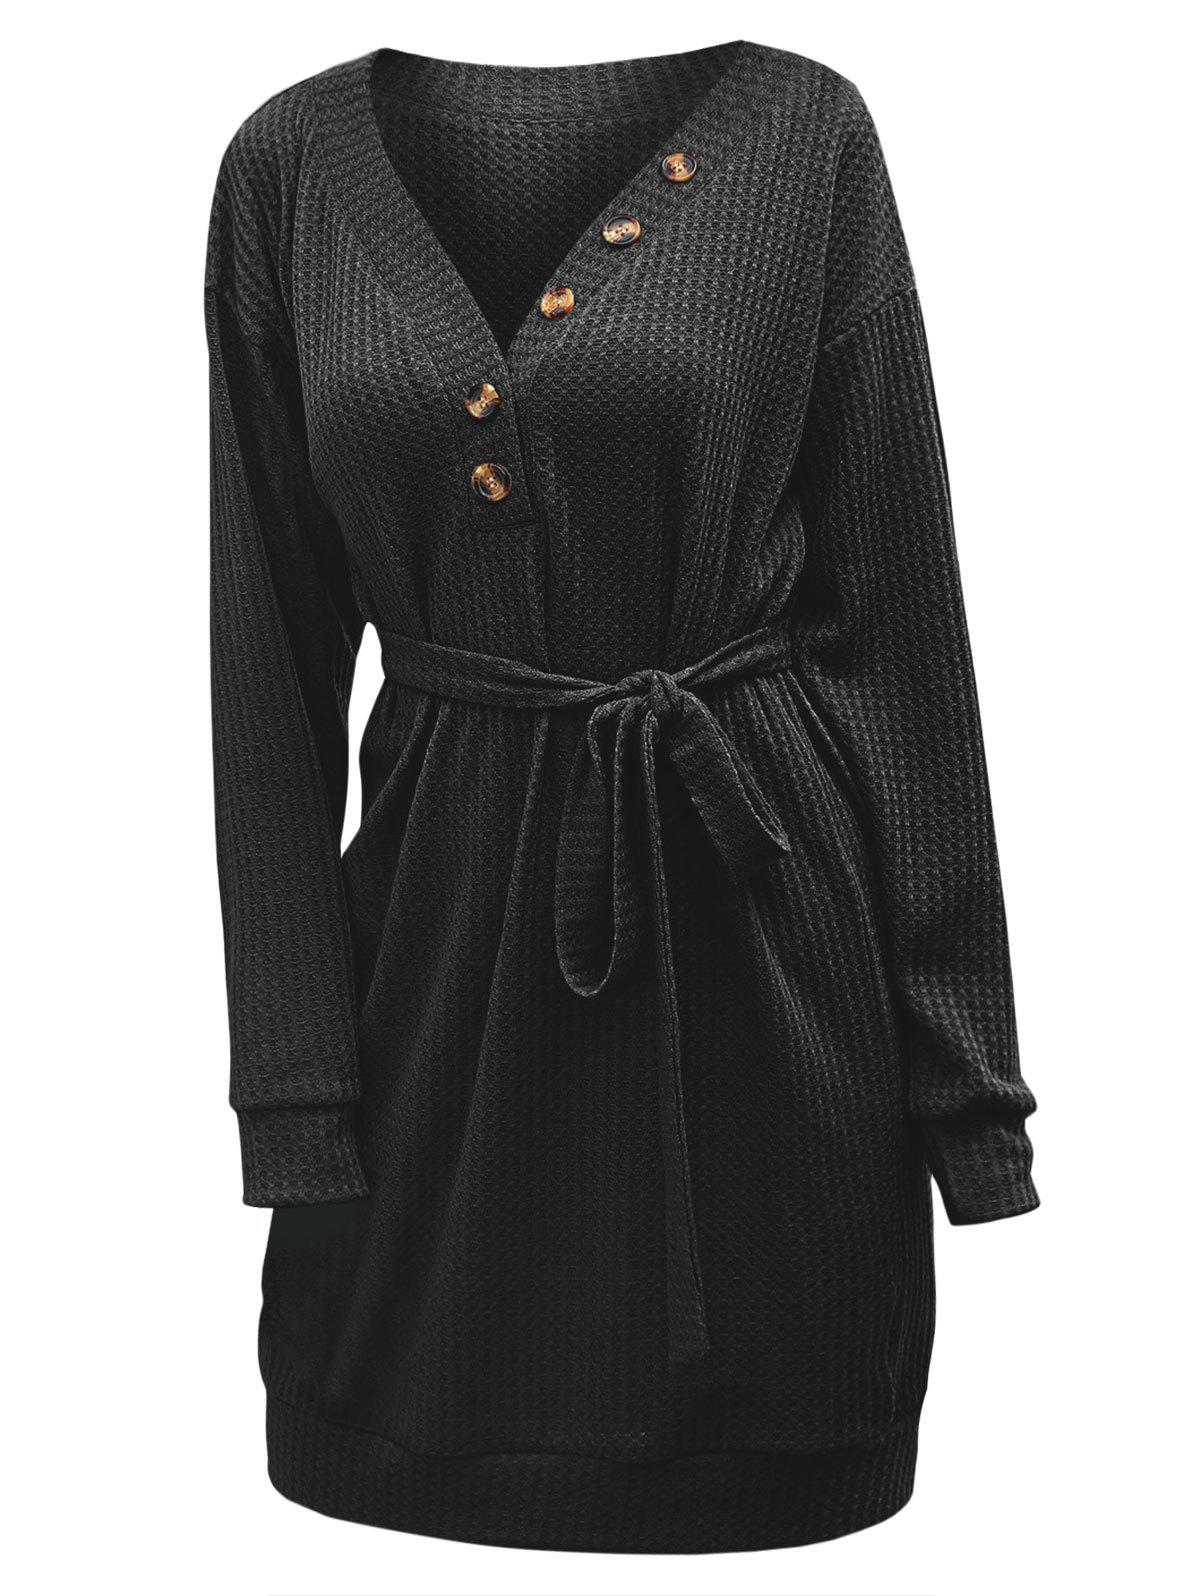 Store Mock Button Knitted Belted Drop Shoulder Mini Dress